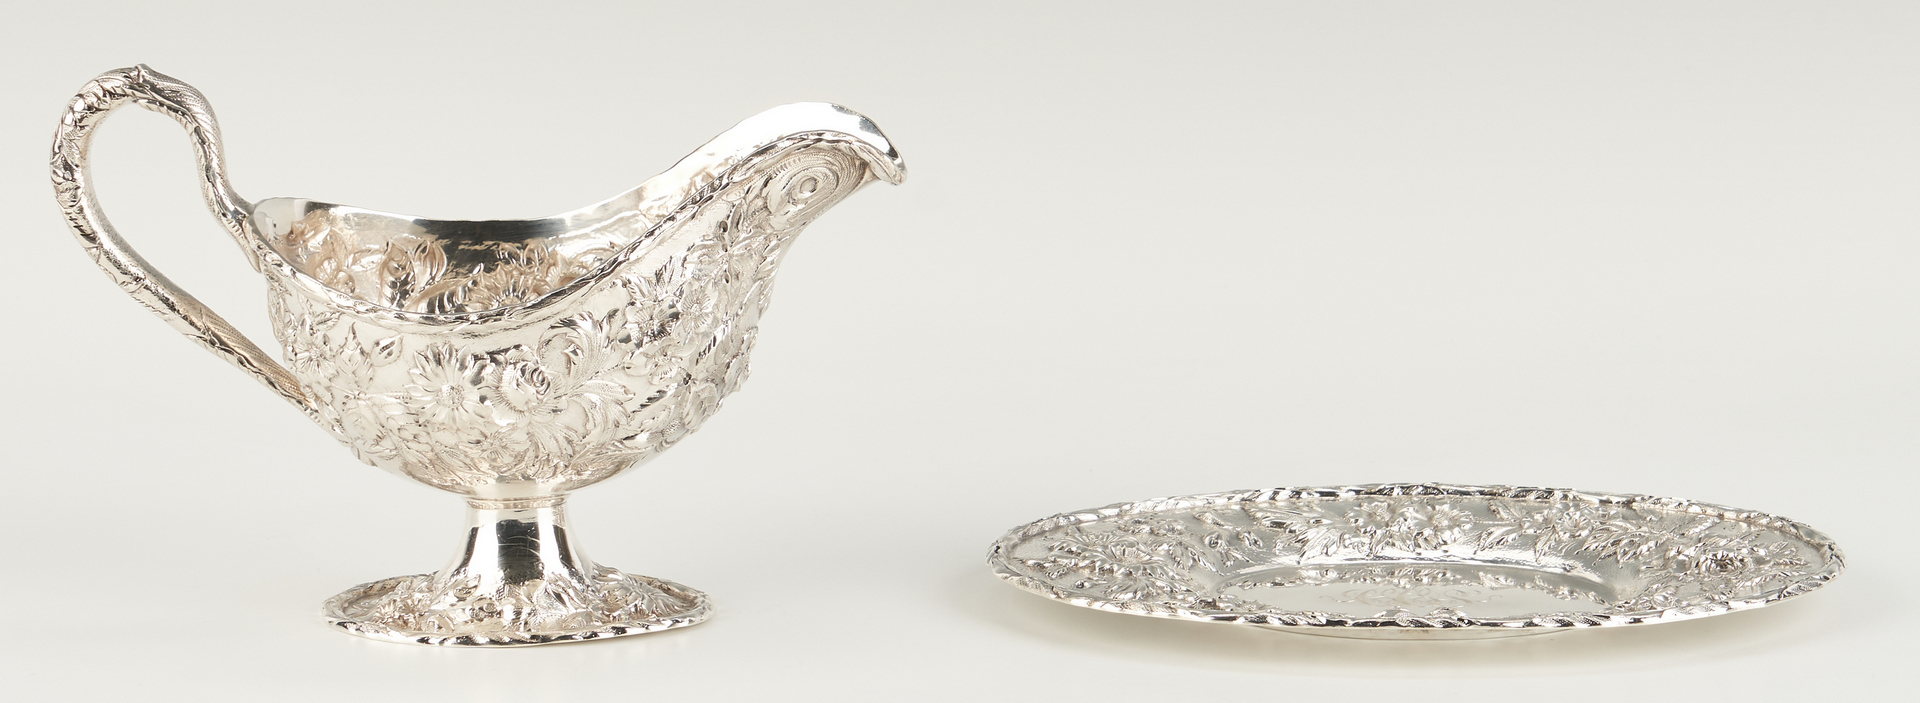 Lot 529: Kirk Repousse Silver Gravy Boat and Candy Dish